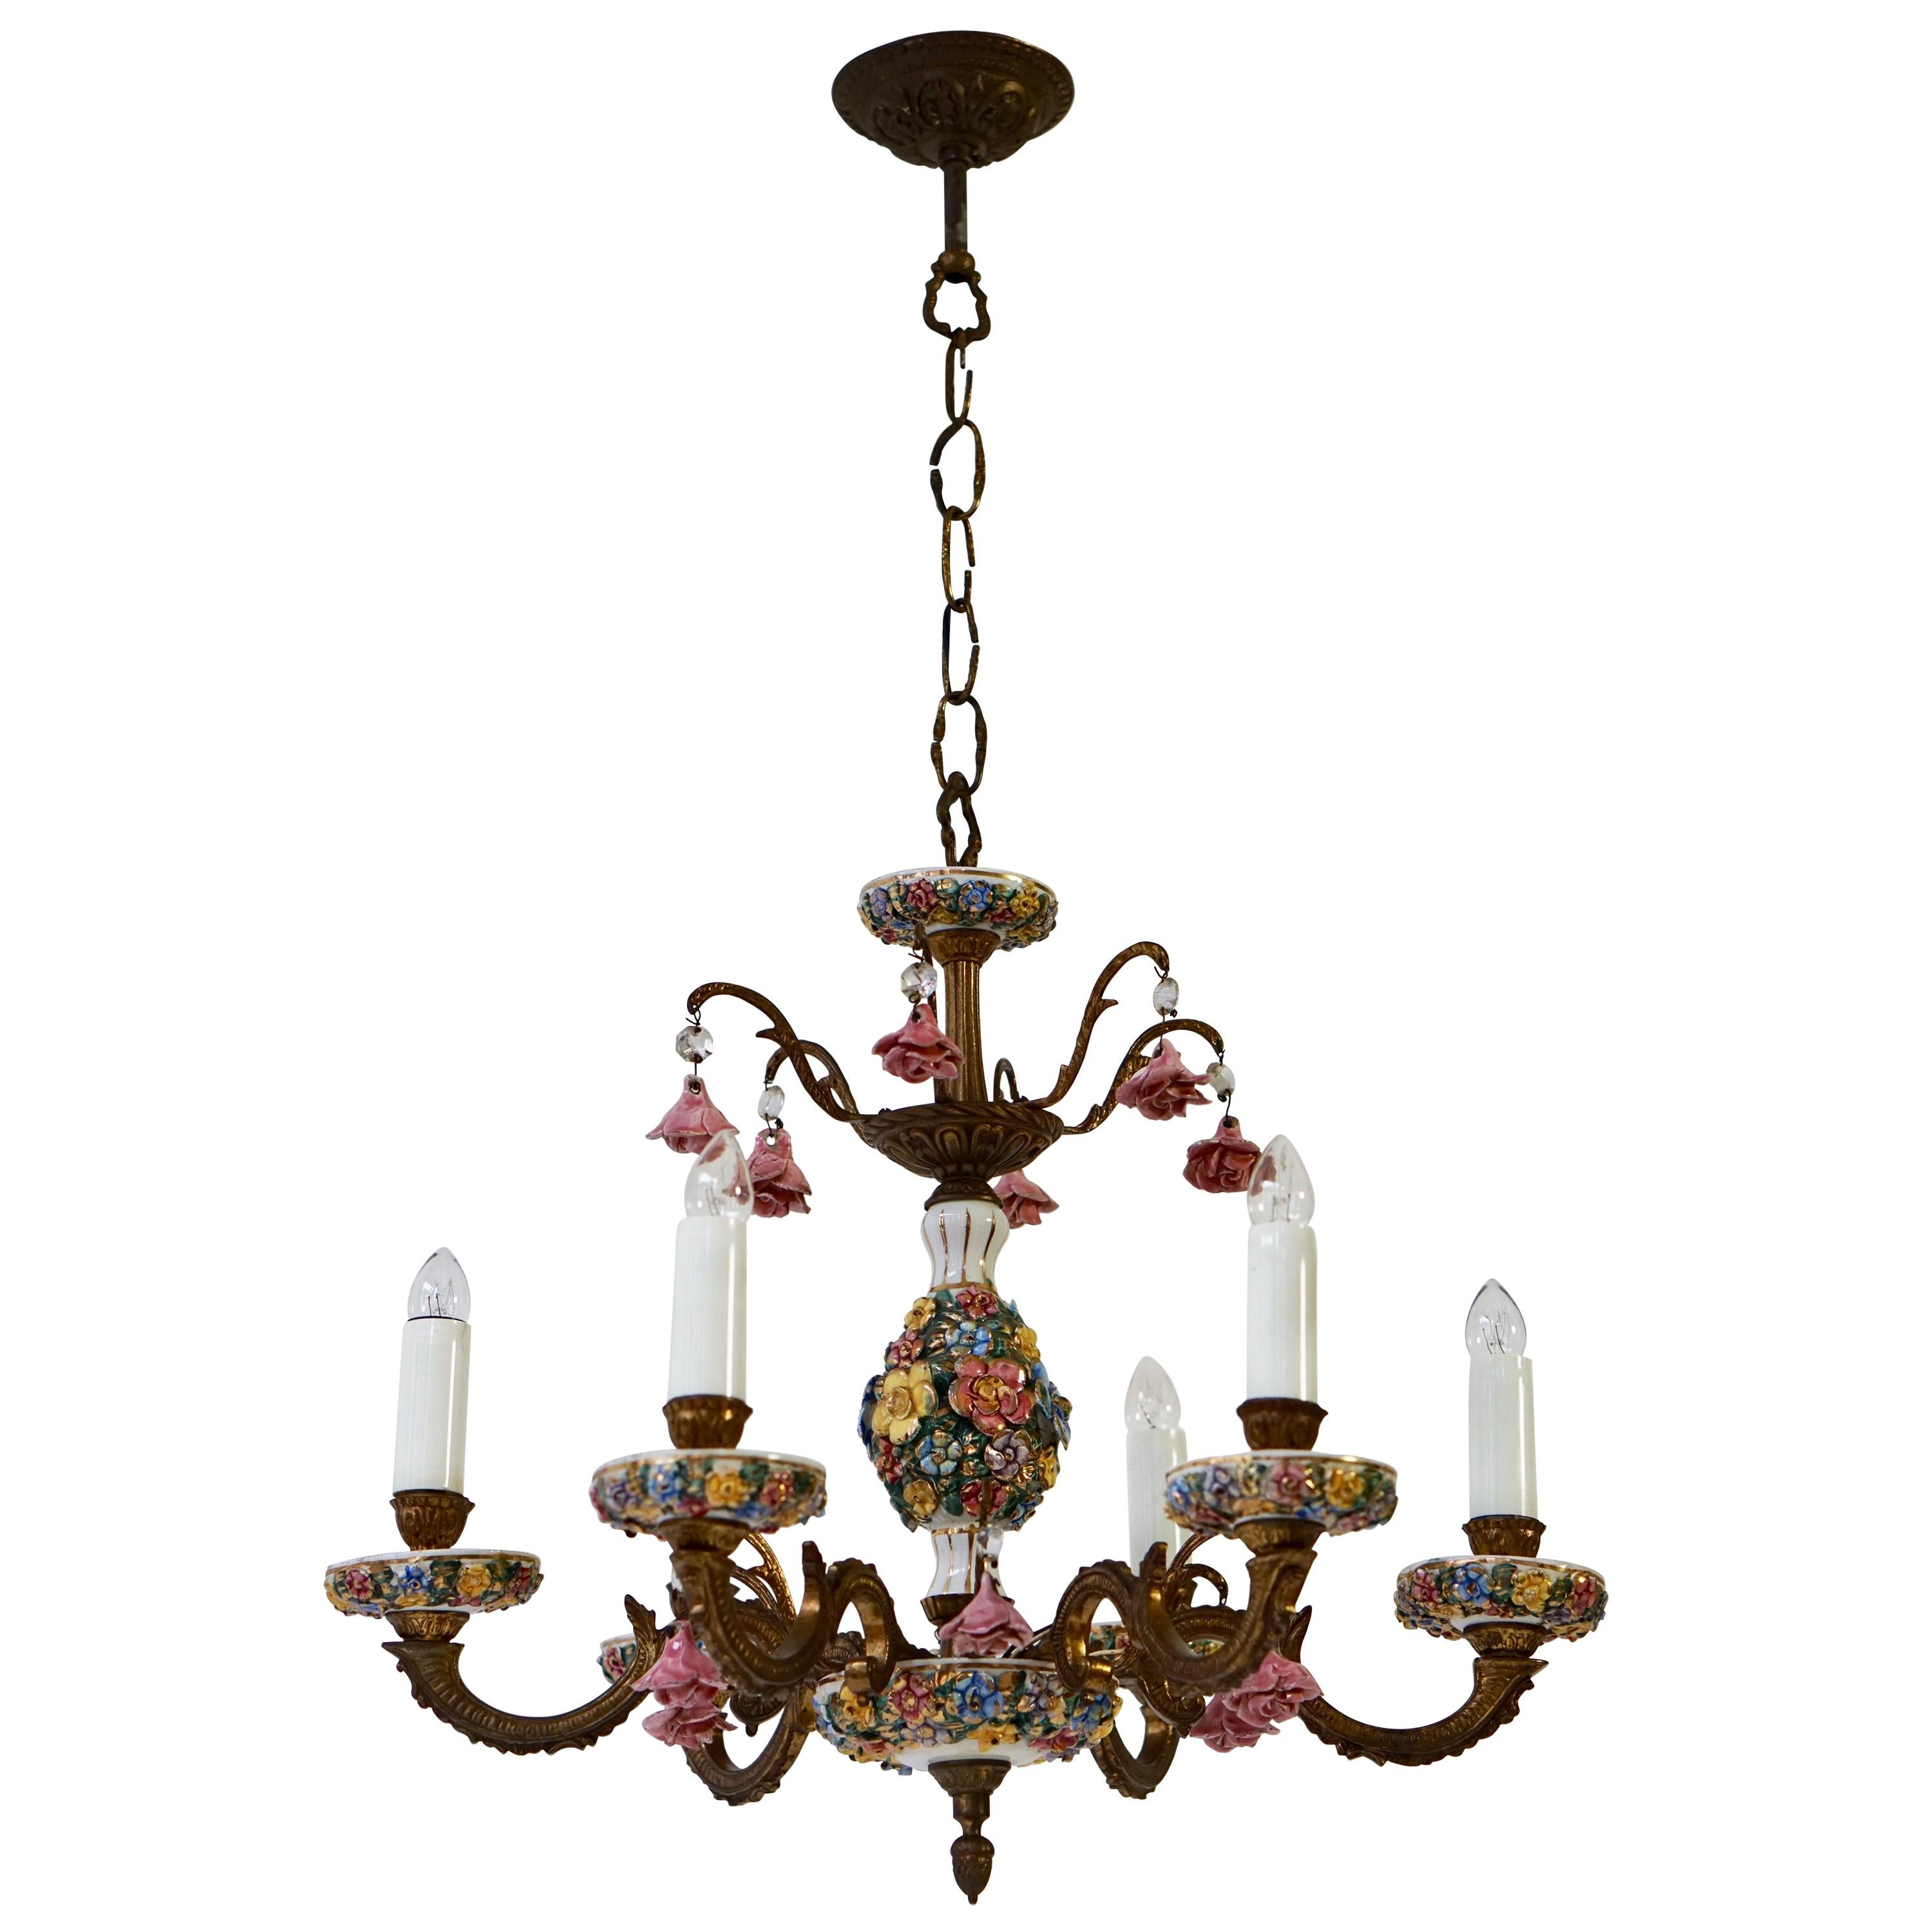 Porcelain and Brass 6-Light Chandelier with Flower Decoration